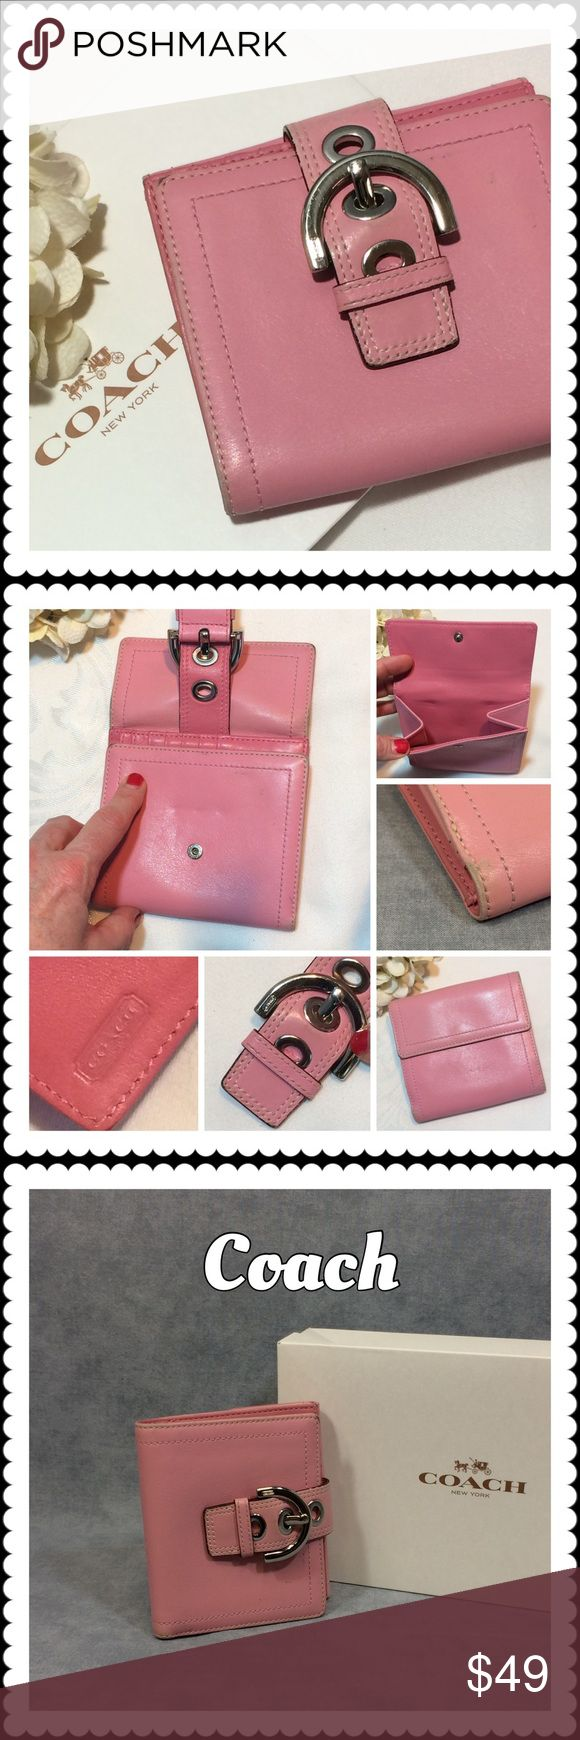 👜 Coach Pink Leather Tri-fold Wallet 👜 Coach Pink Leather Tri-fold Wallet 👜 Excellent Used Condition. Great leather wallet in light pink exterior, darker pink interior leather. Space for 10 cards, 2 large cash pockets, 1 outer snap pocket. Slightest of fading on the outside and minor edge wear. (See photos) Asking price purchase comes with Coach box. Authentic. Coach Bags Wallets